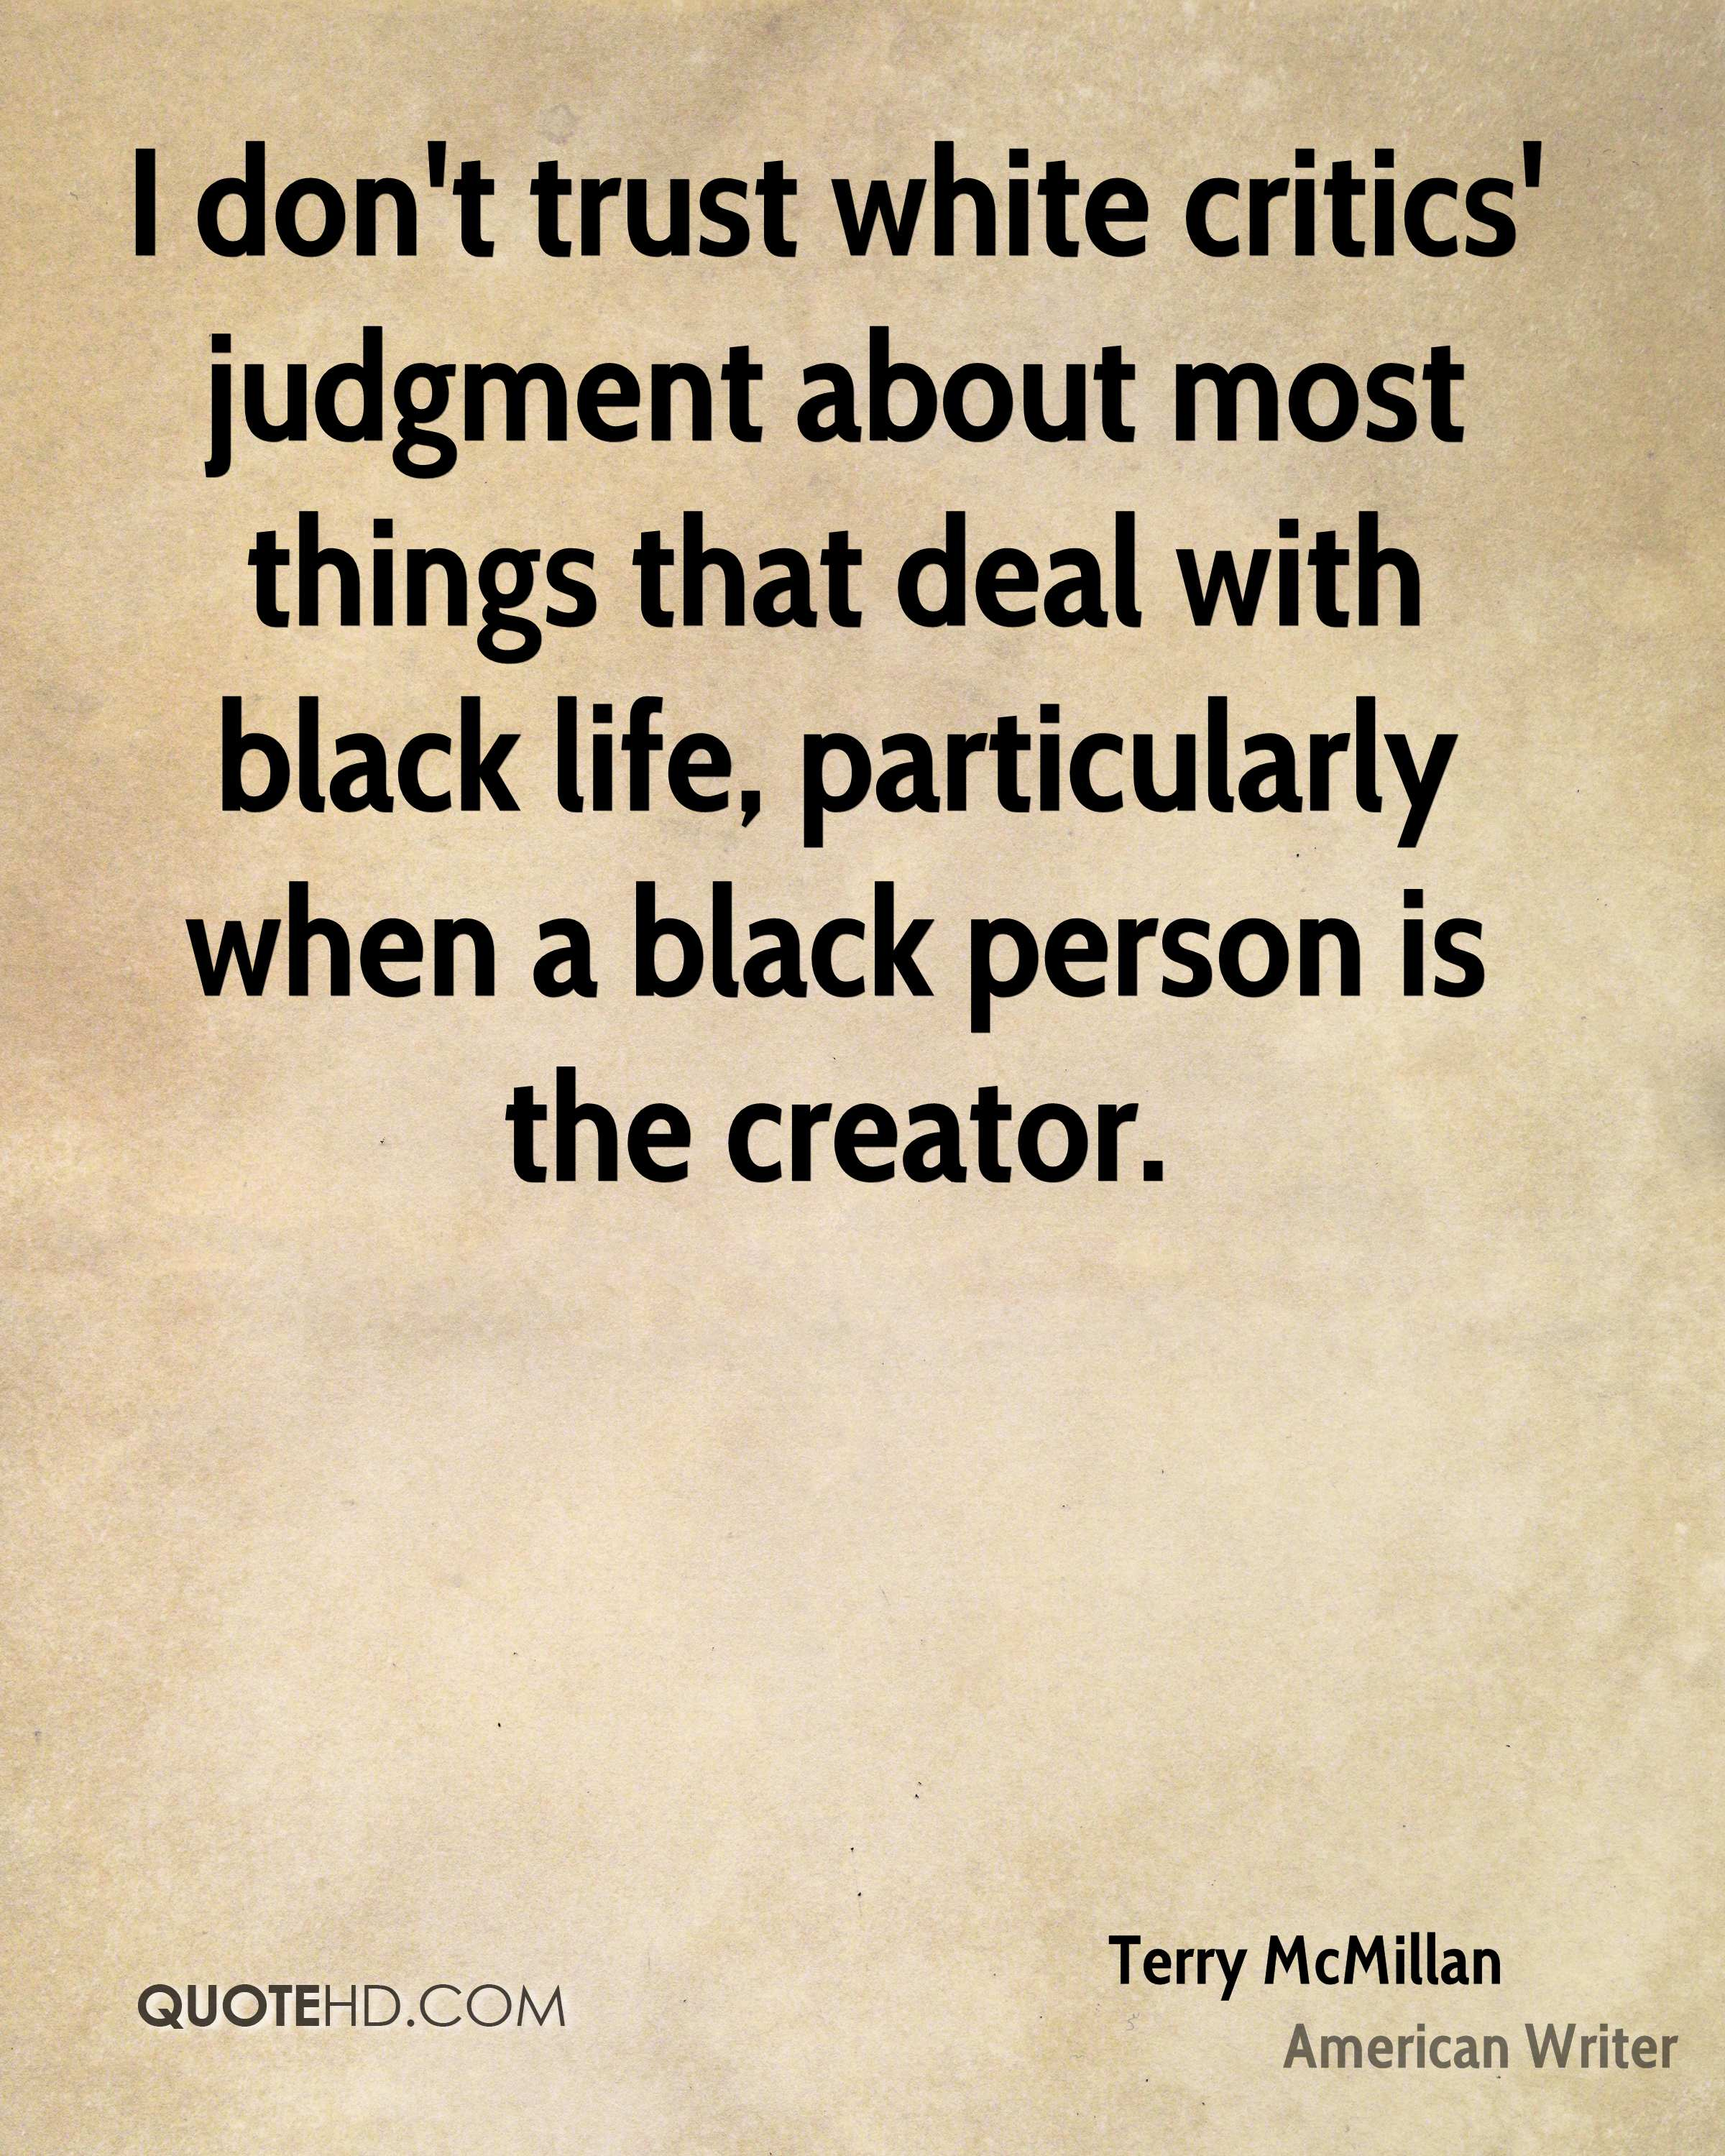 I don't trust white critics' judgment about most things that deal with black life, particularly when a black person is the creator.